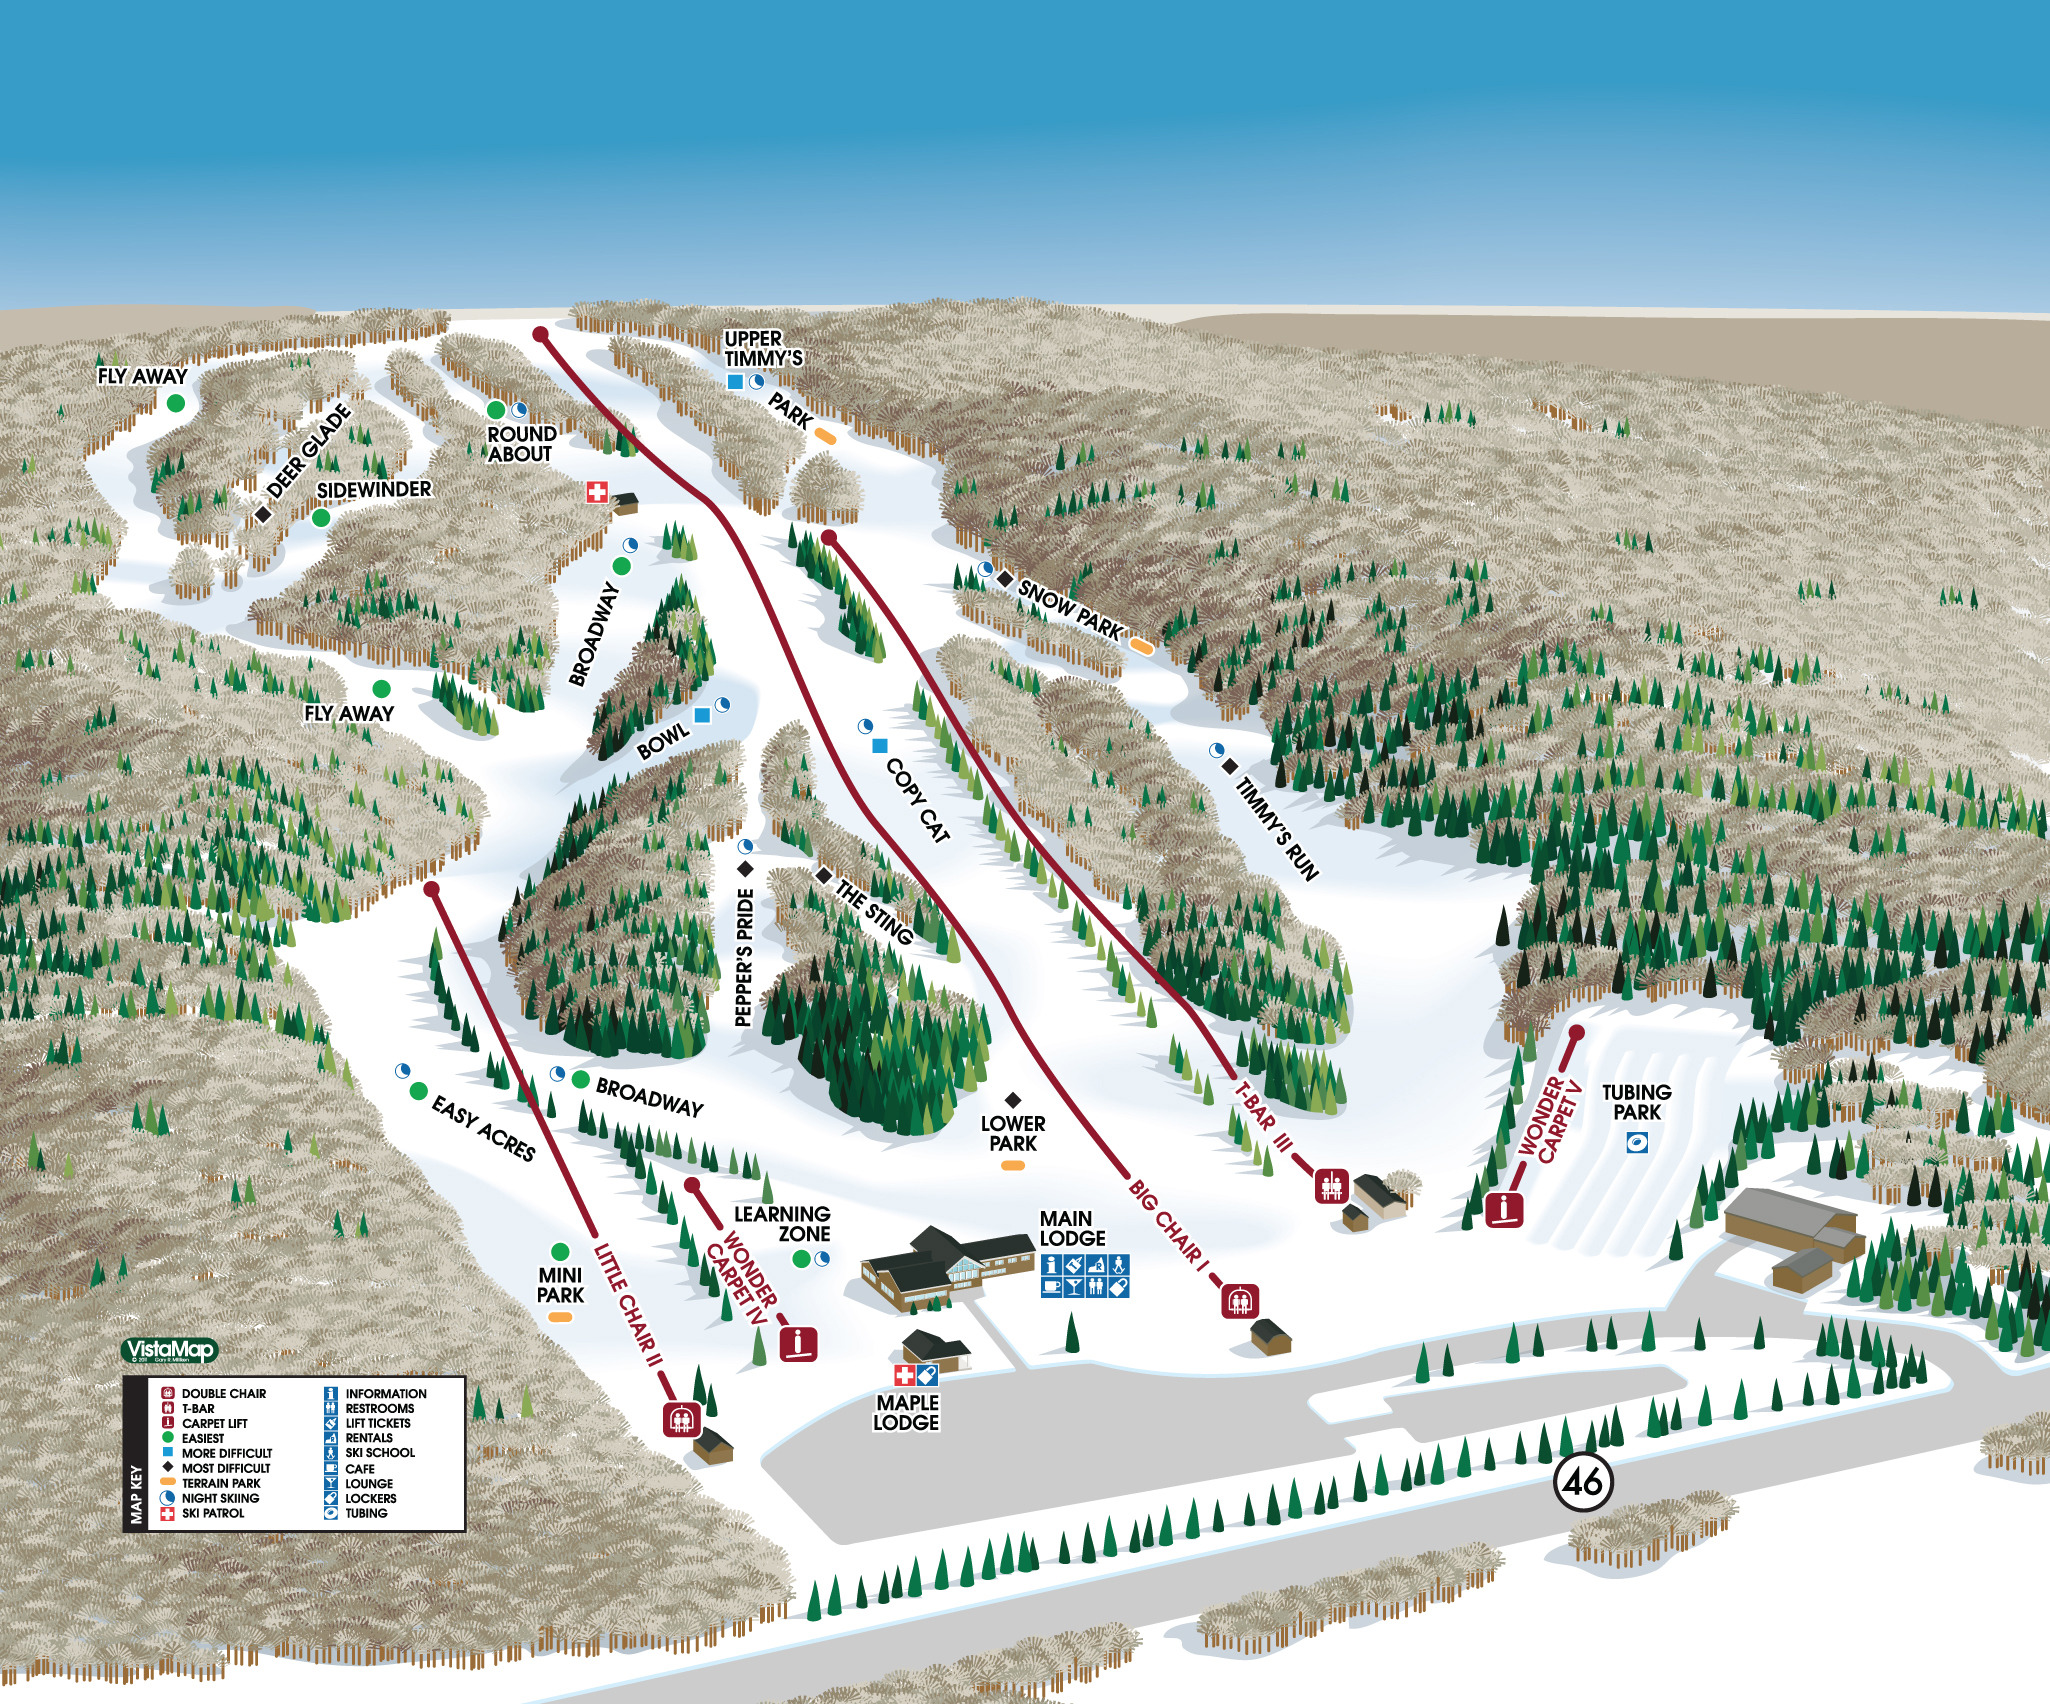 Woods Valley Ski Area Trail Map | OnTheSnow on mountain ny map, ski slopes in ny, bike ny map, skiing ny state map, ski resorts in central ny, summer ny map, hunter mt ny map, city ny map, camp ny map, snow ny map, bergen ny map, cypress hill ny map, peak n peak map, ski border, ski resort ny state, hunt ny map, peak peak resort map, cross country skiing places in ny map,